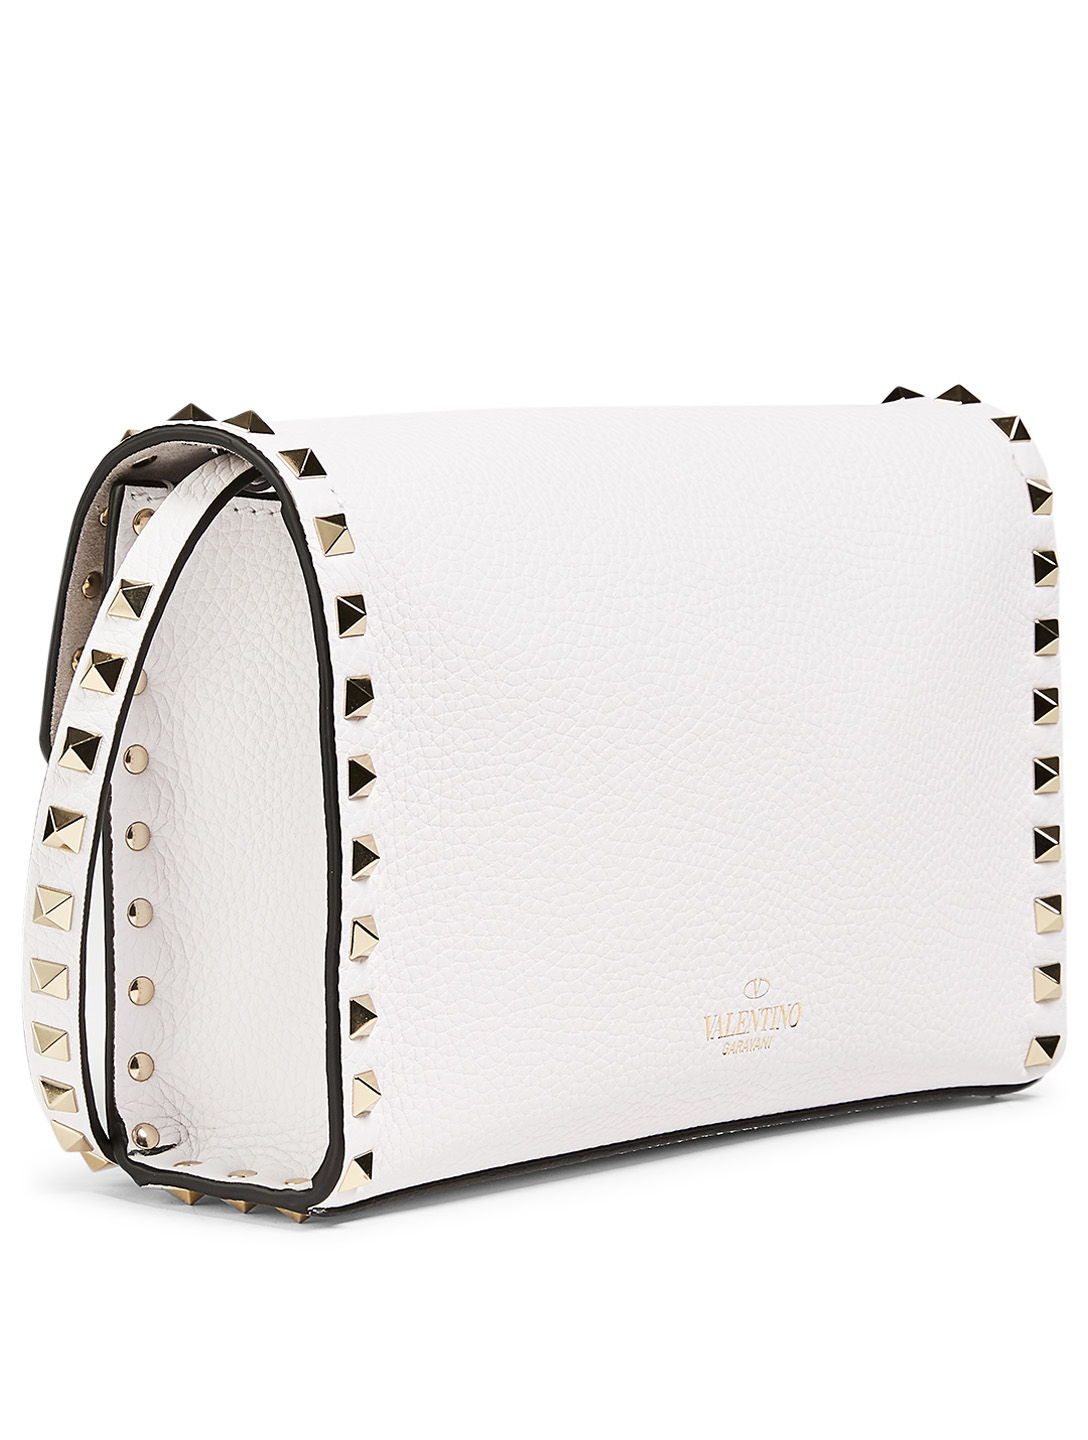 VALENTINO GARAVANI Medium Rockstud Leather Shoulder Bag Women's White